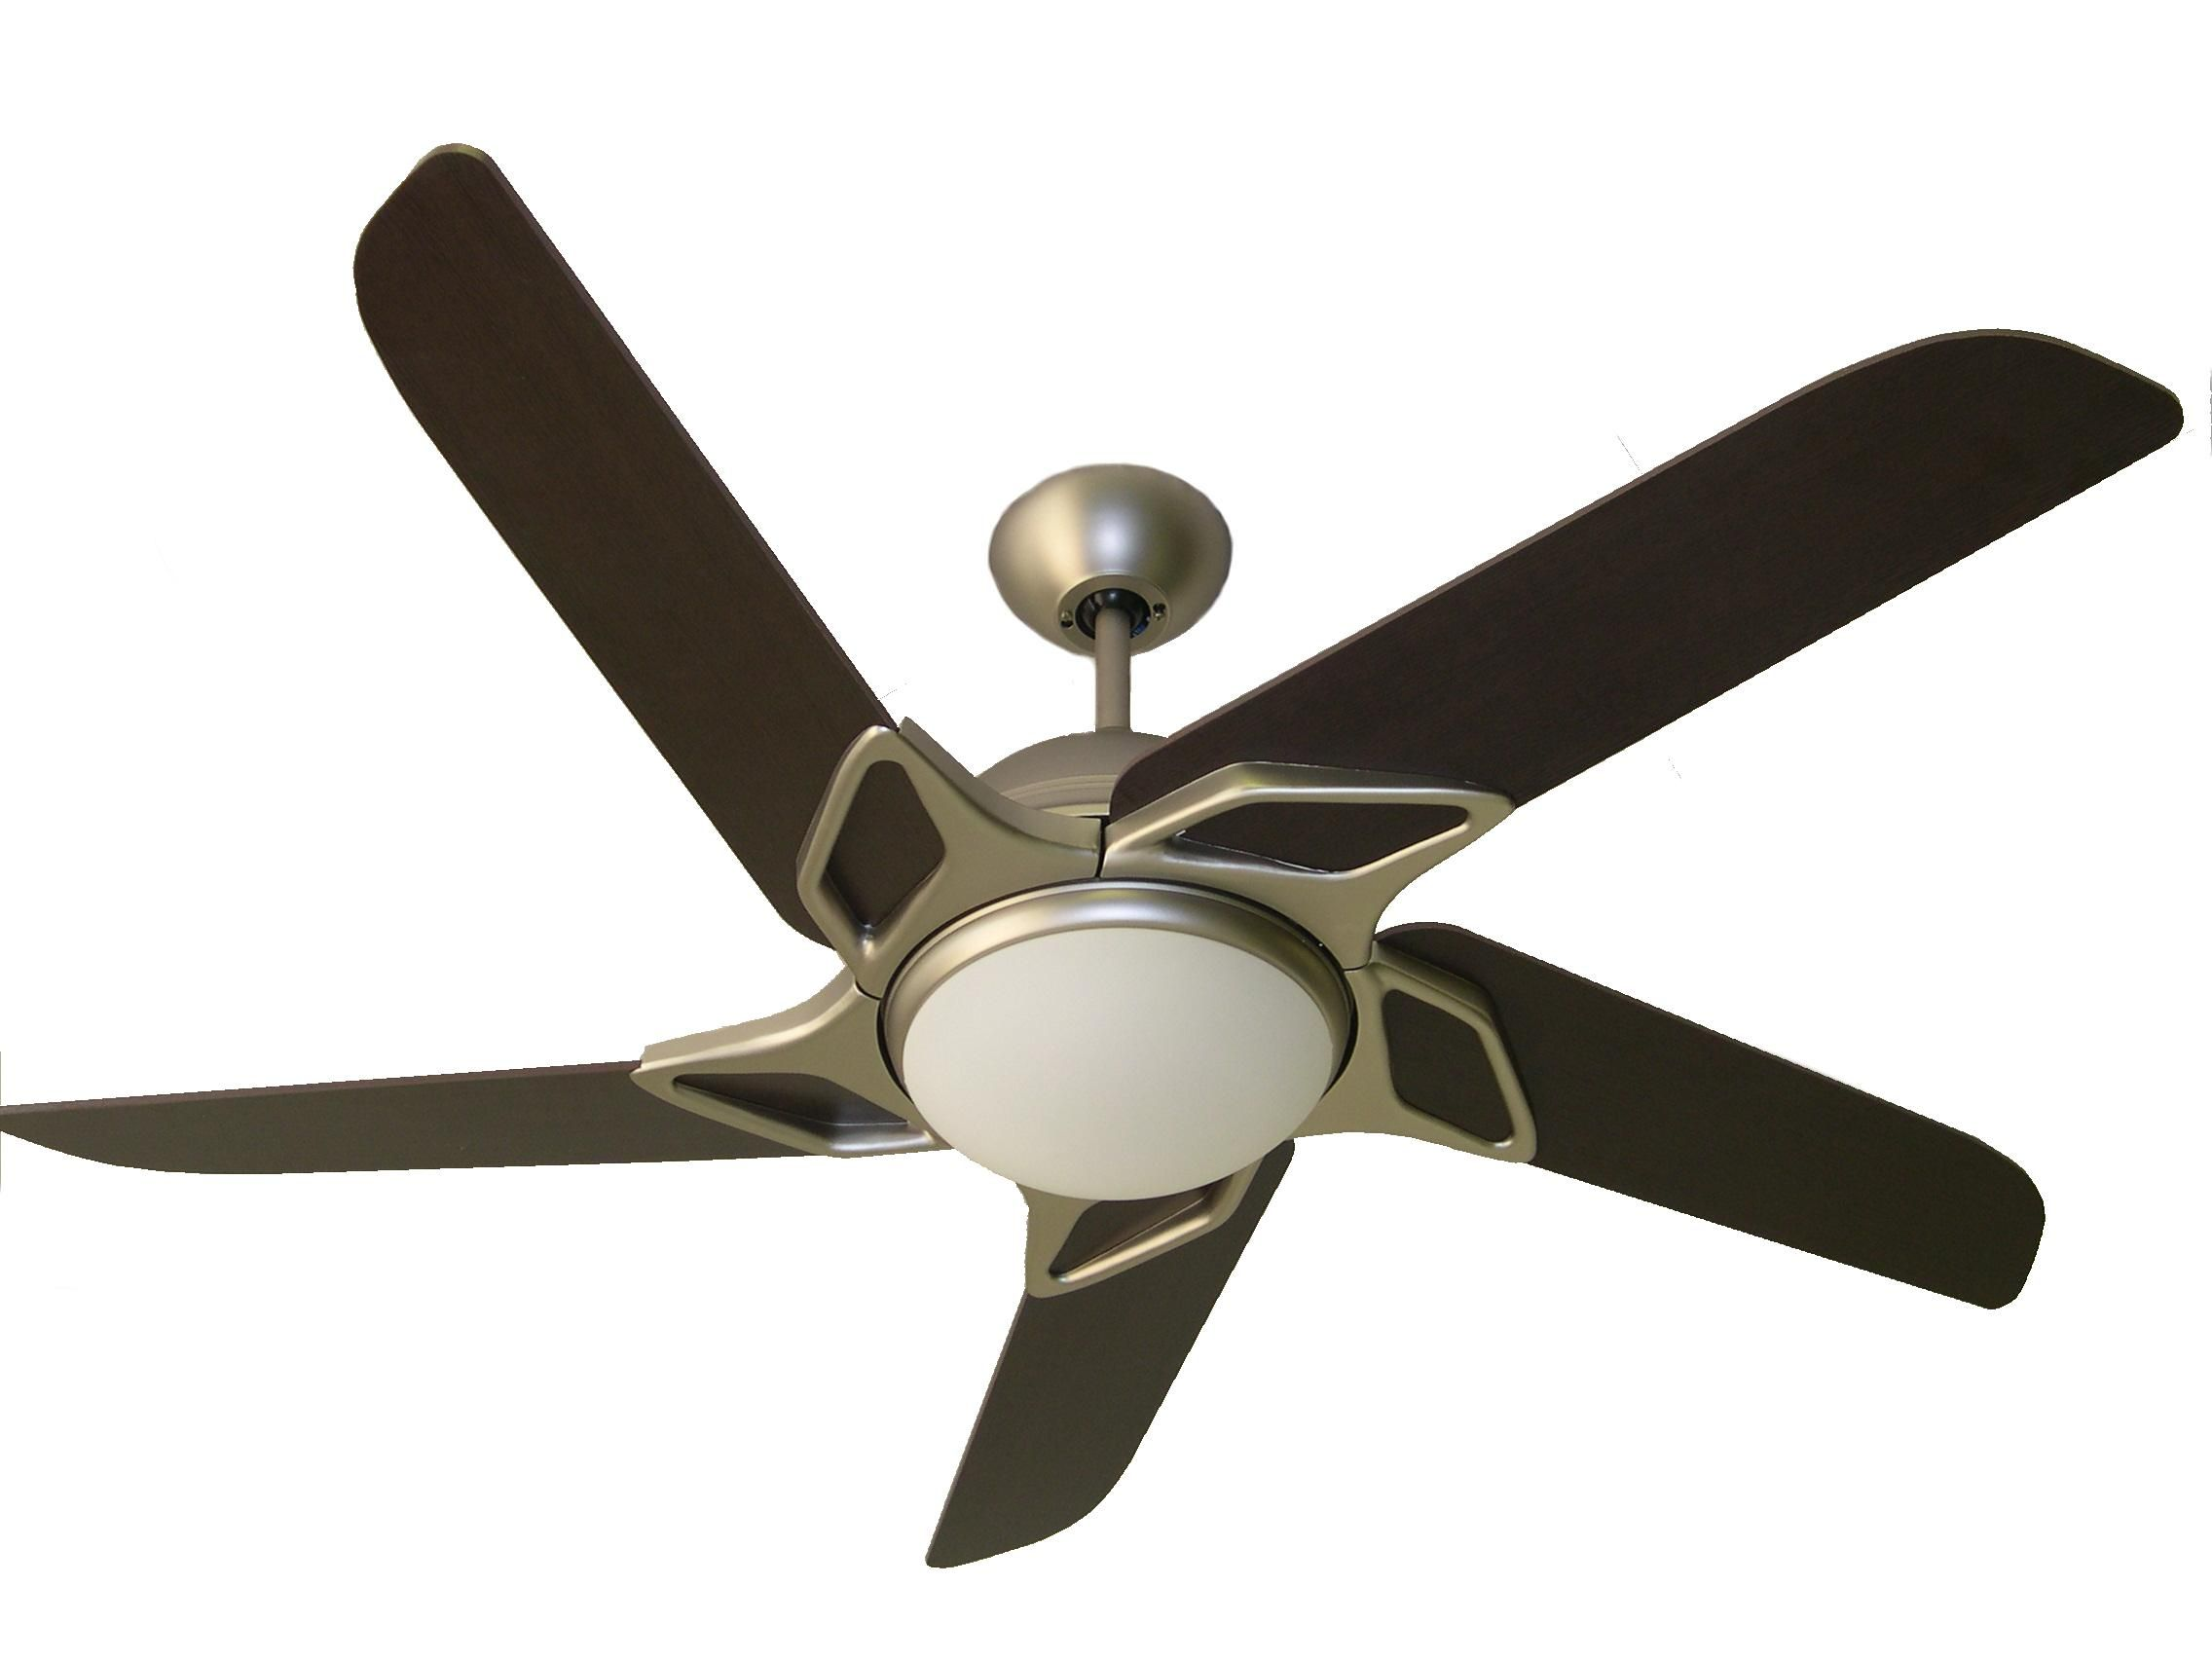 Things to consider when shopping for ceiling fans